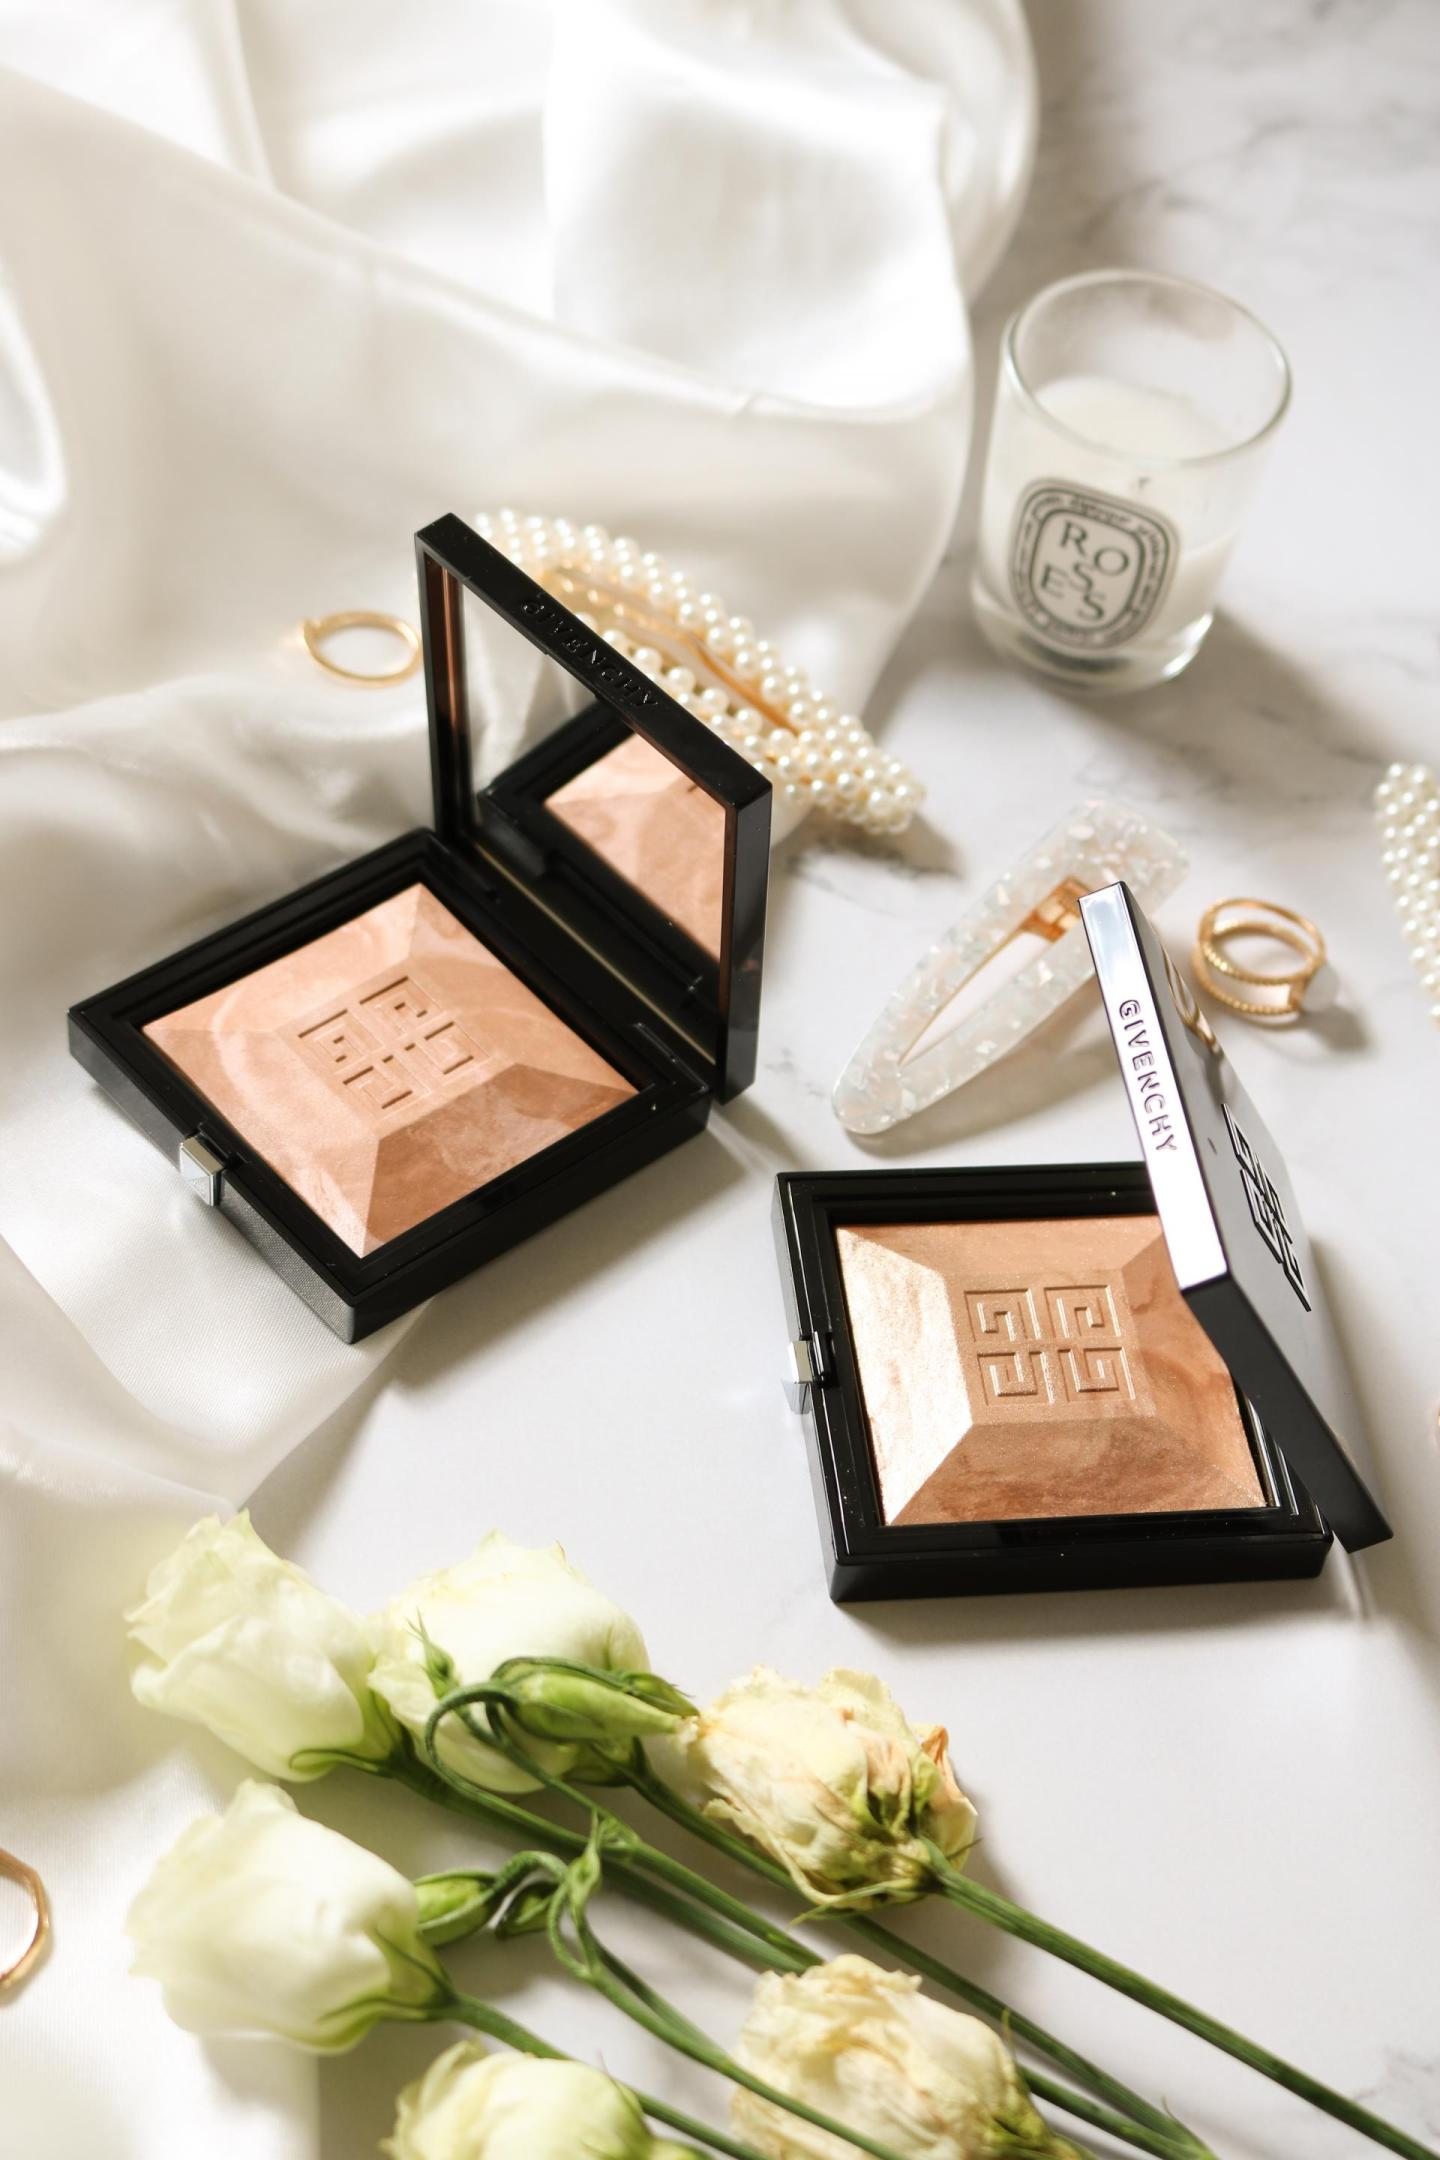 Givenchy Solar Pulse Healthy Glow Marbled Powder